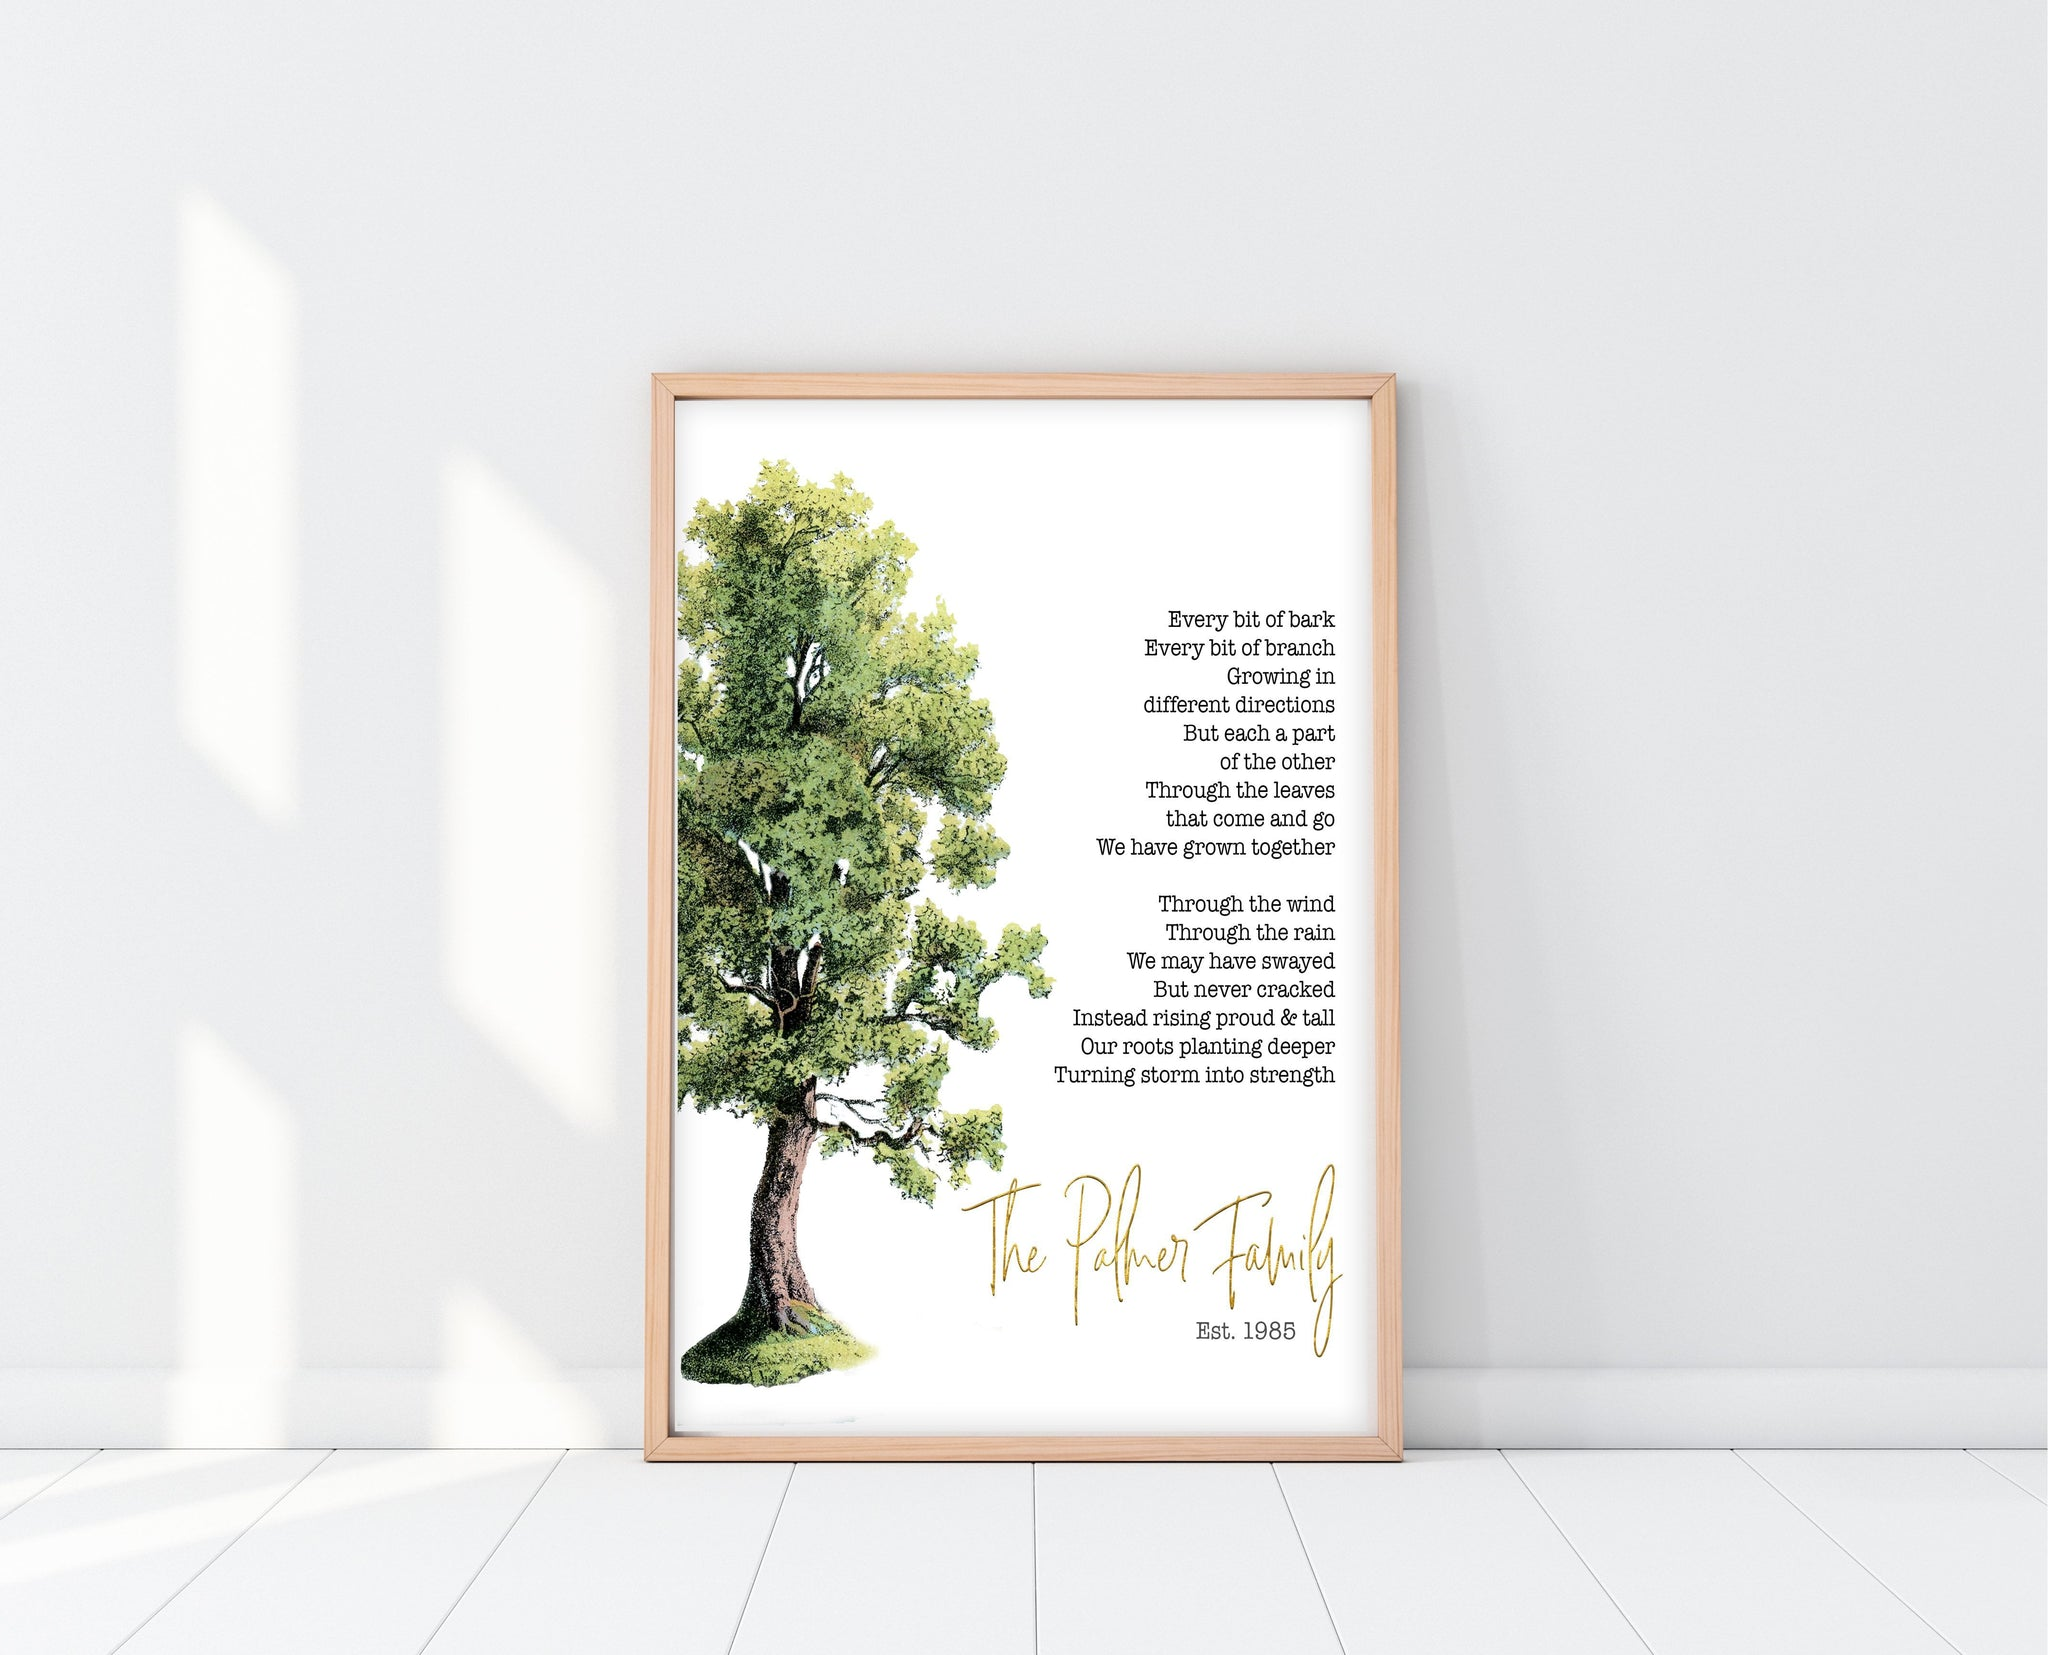 Anniversary Gift For Parents | Family Tree Poem | Ollie + Hank